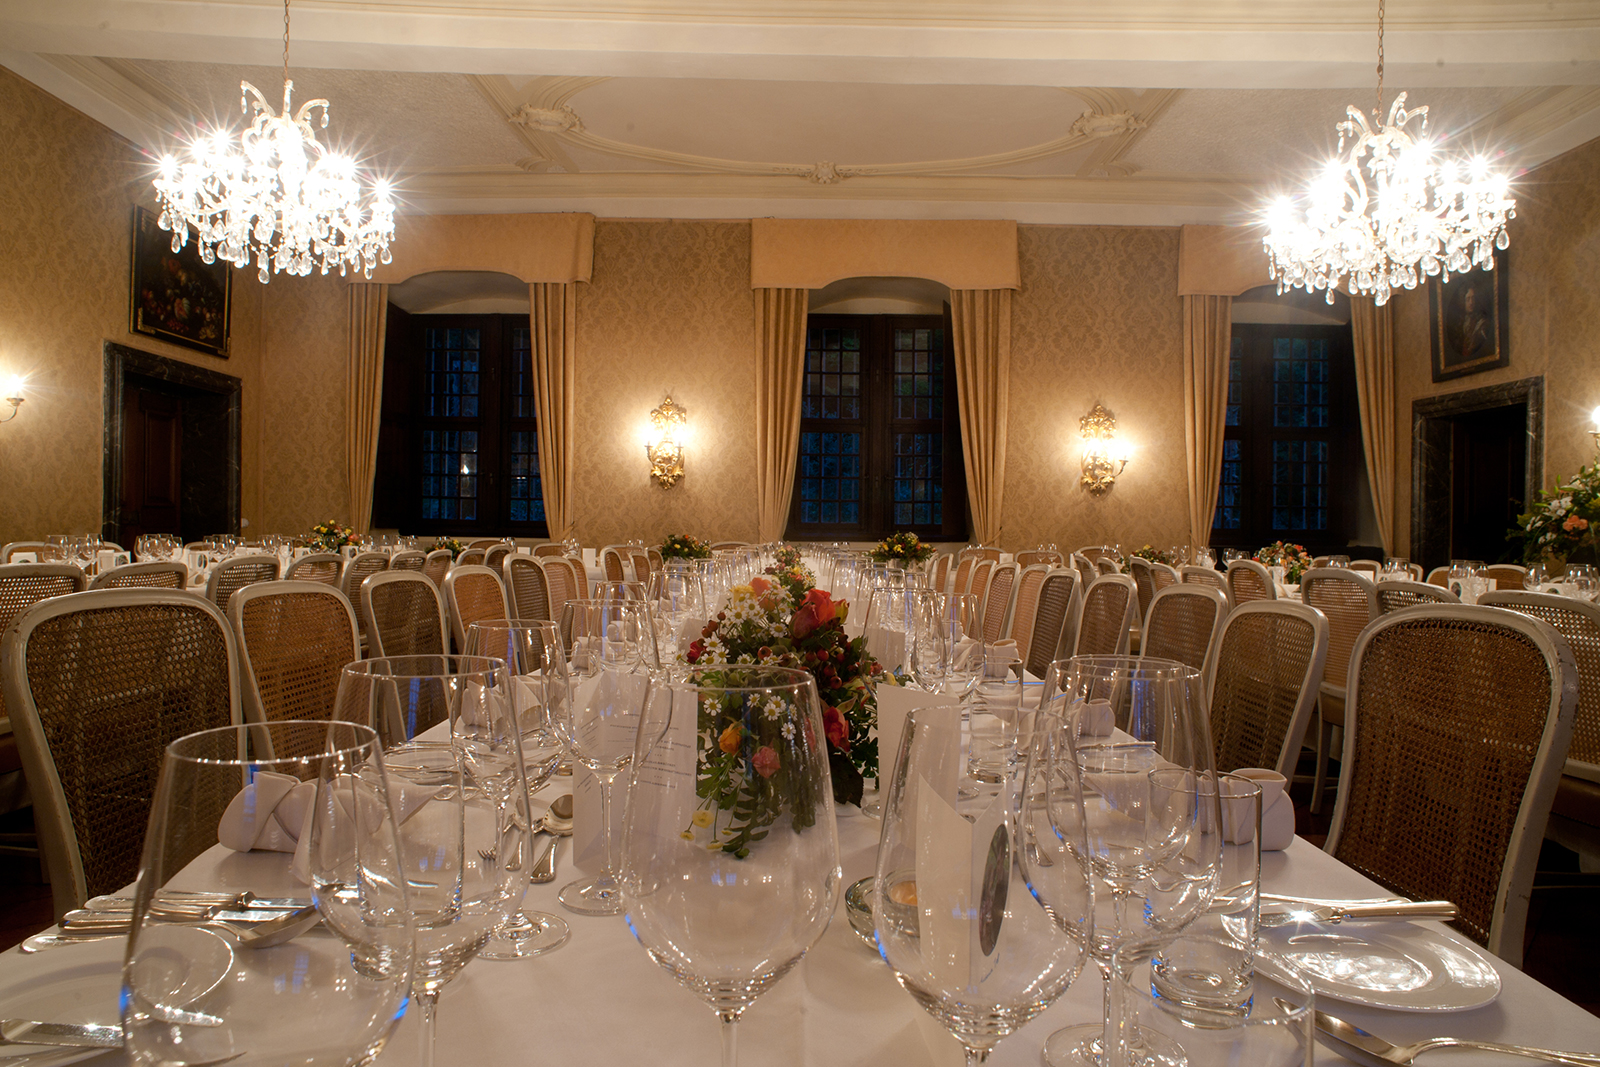 Romantic wedding and event at Schloss Ehreshoven in Engelskirchen